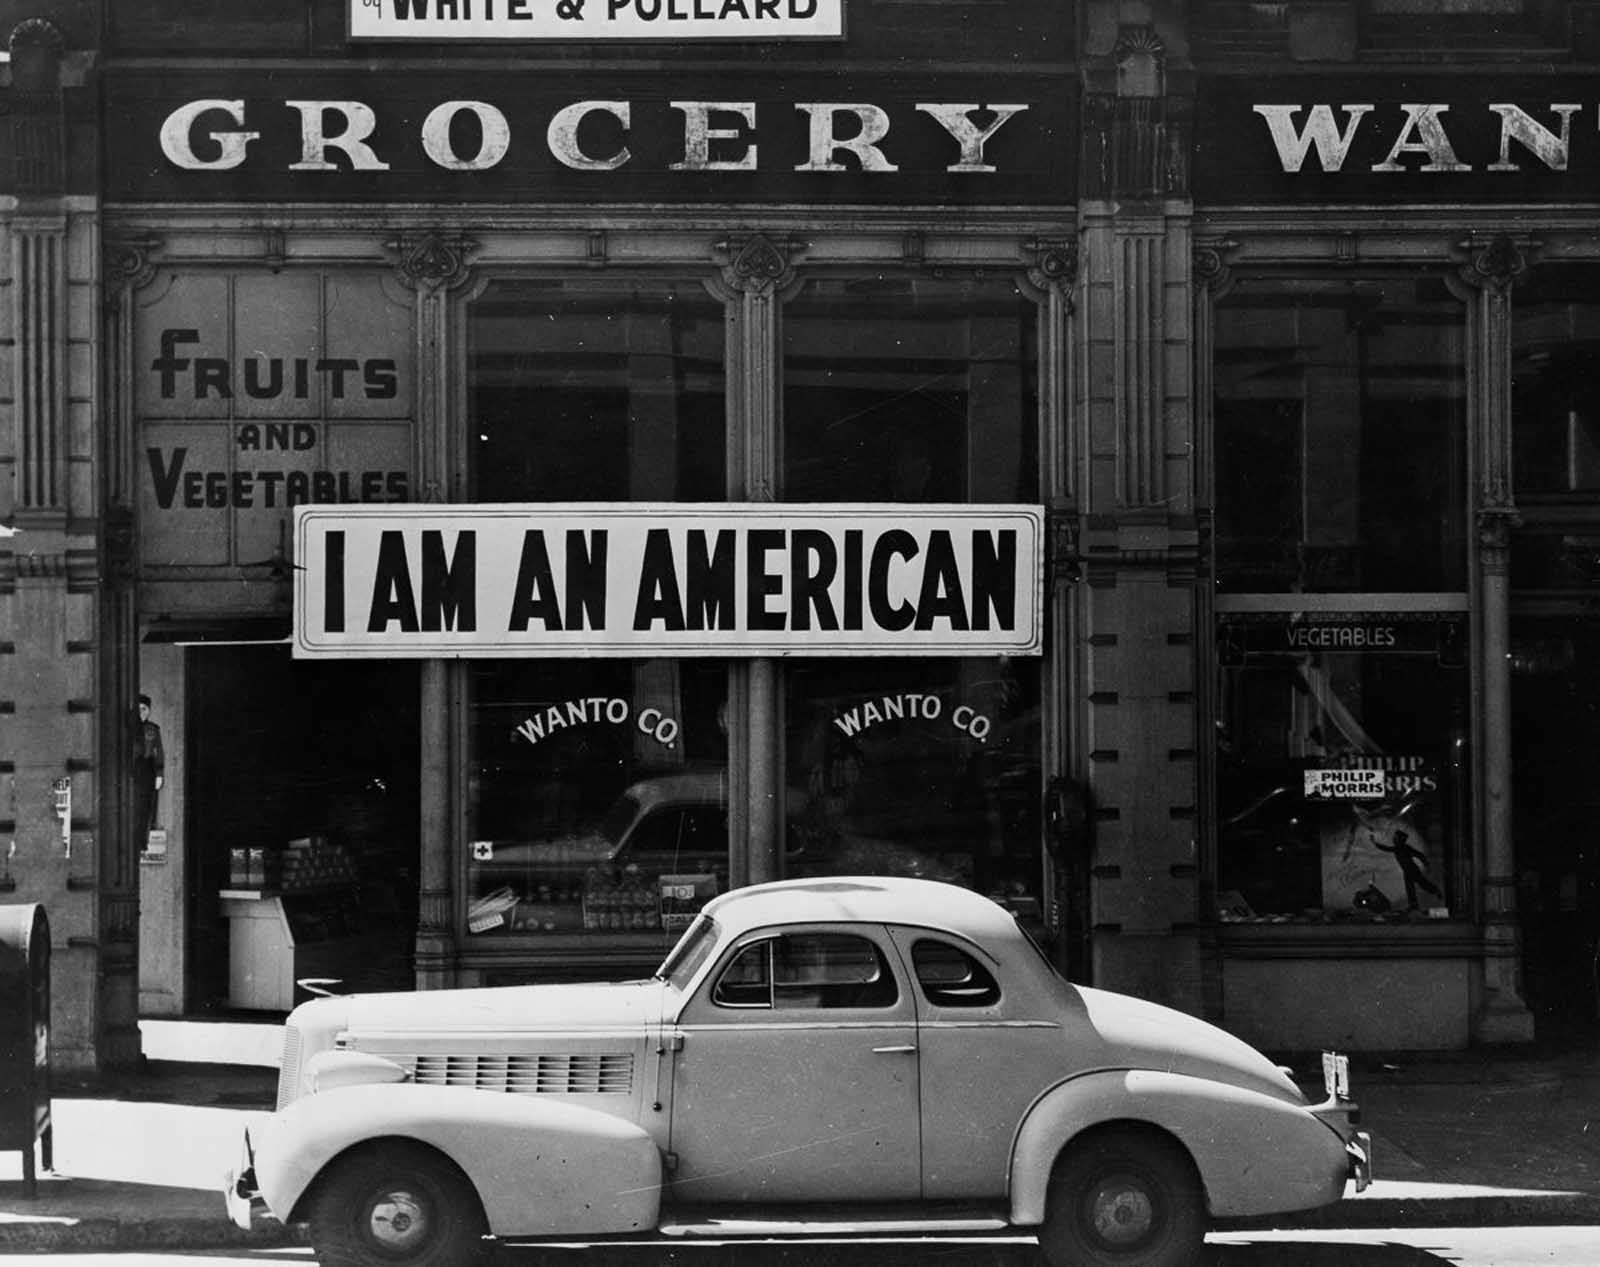 This store owned by a man of Japanese ancestry is closed following evacuation orders in Oakland, California, in April of 1942. After the attack on Pearl Harbor the owner had placed the